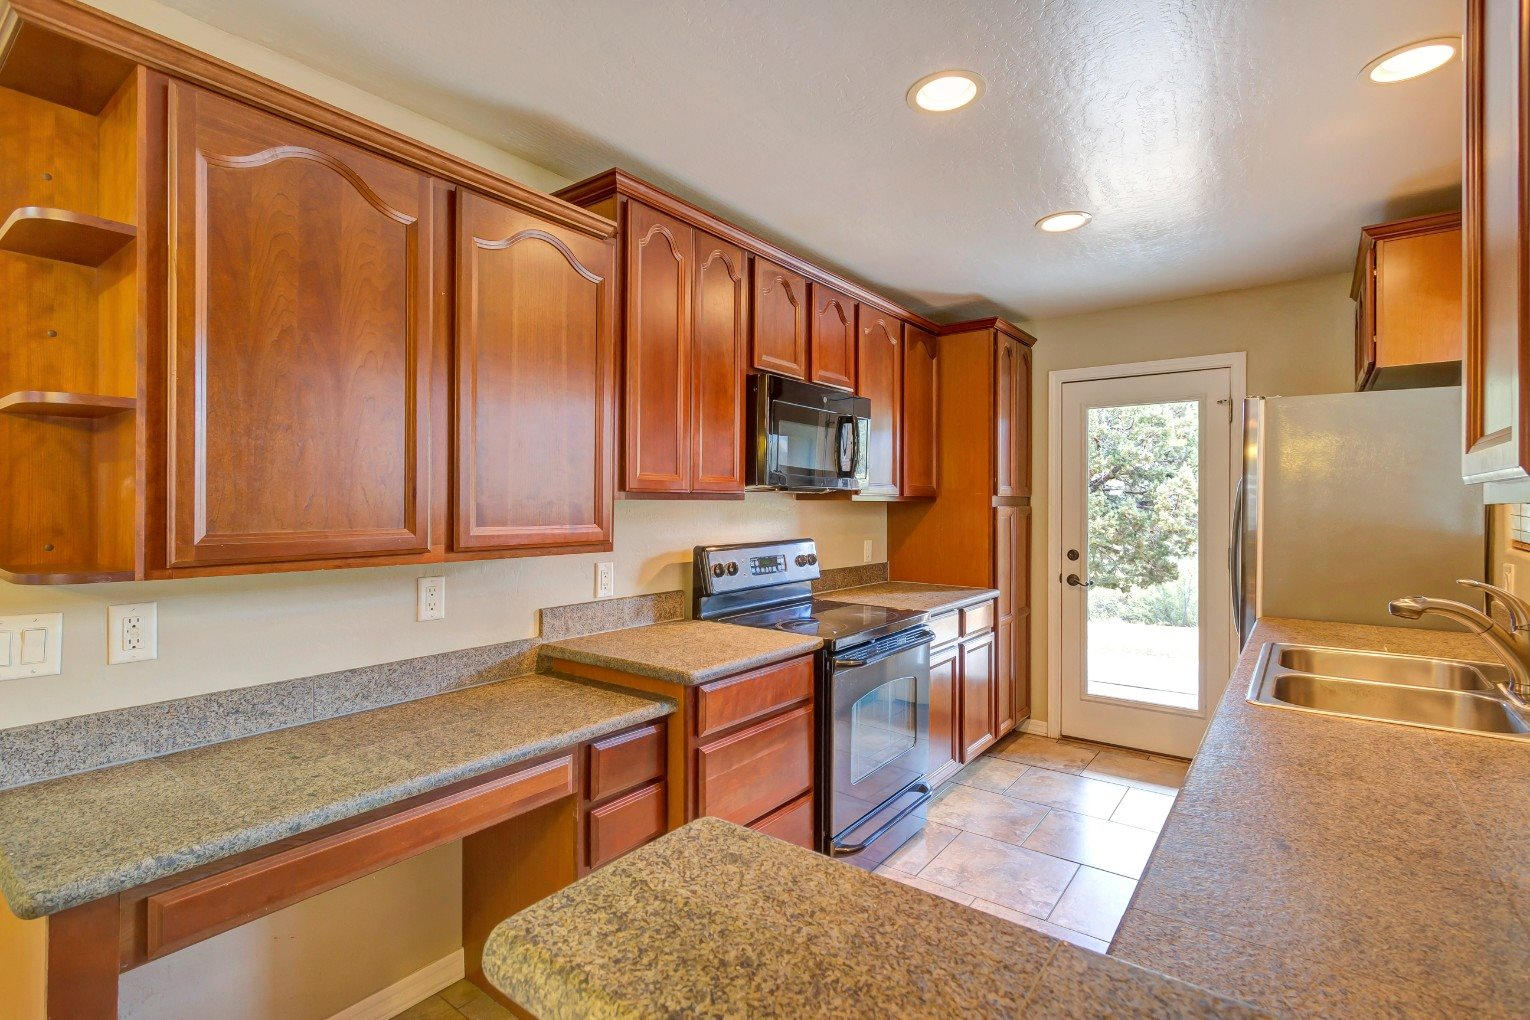 Kitchen at Cedar Ridge in Prescott, AZ